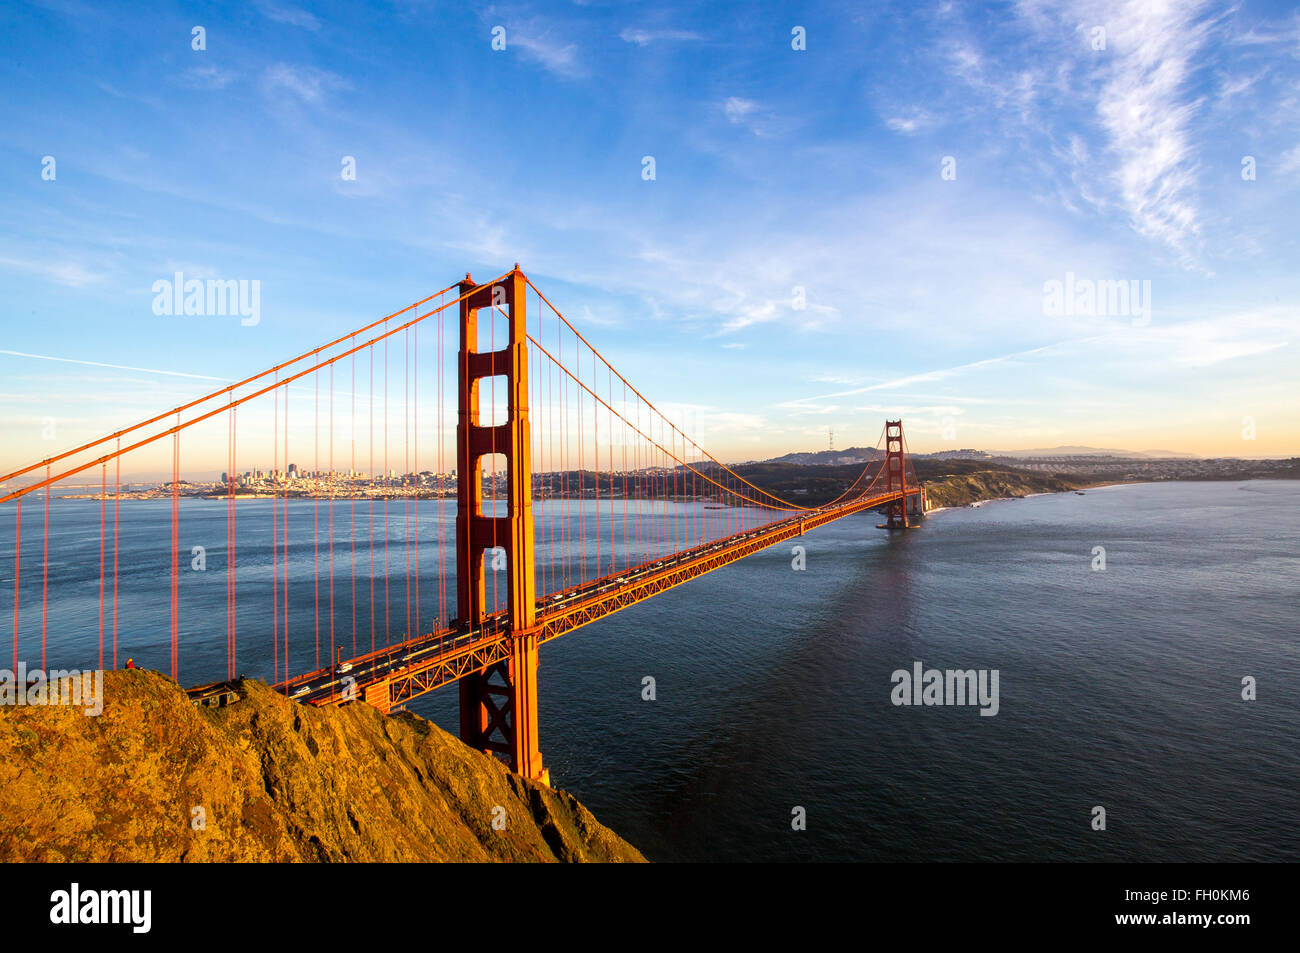 Sunny blue skies over the San Francisco skyline with the iconic Golden Gate Bridge - Stock Image